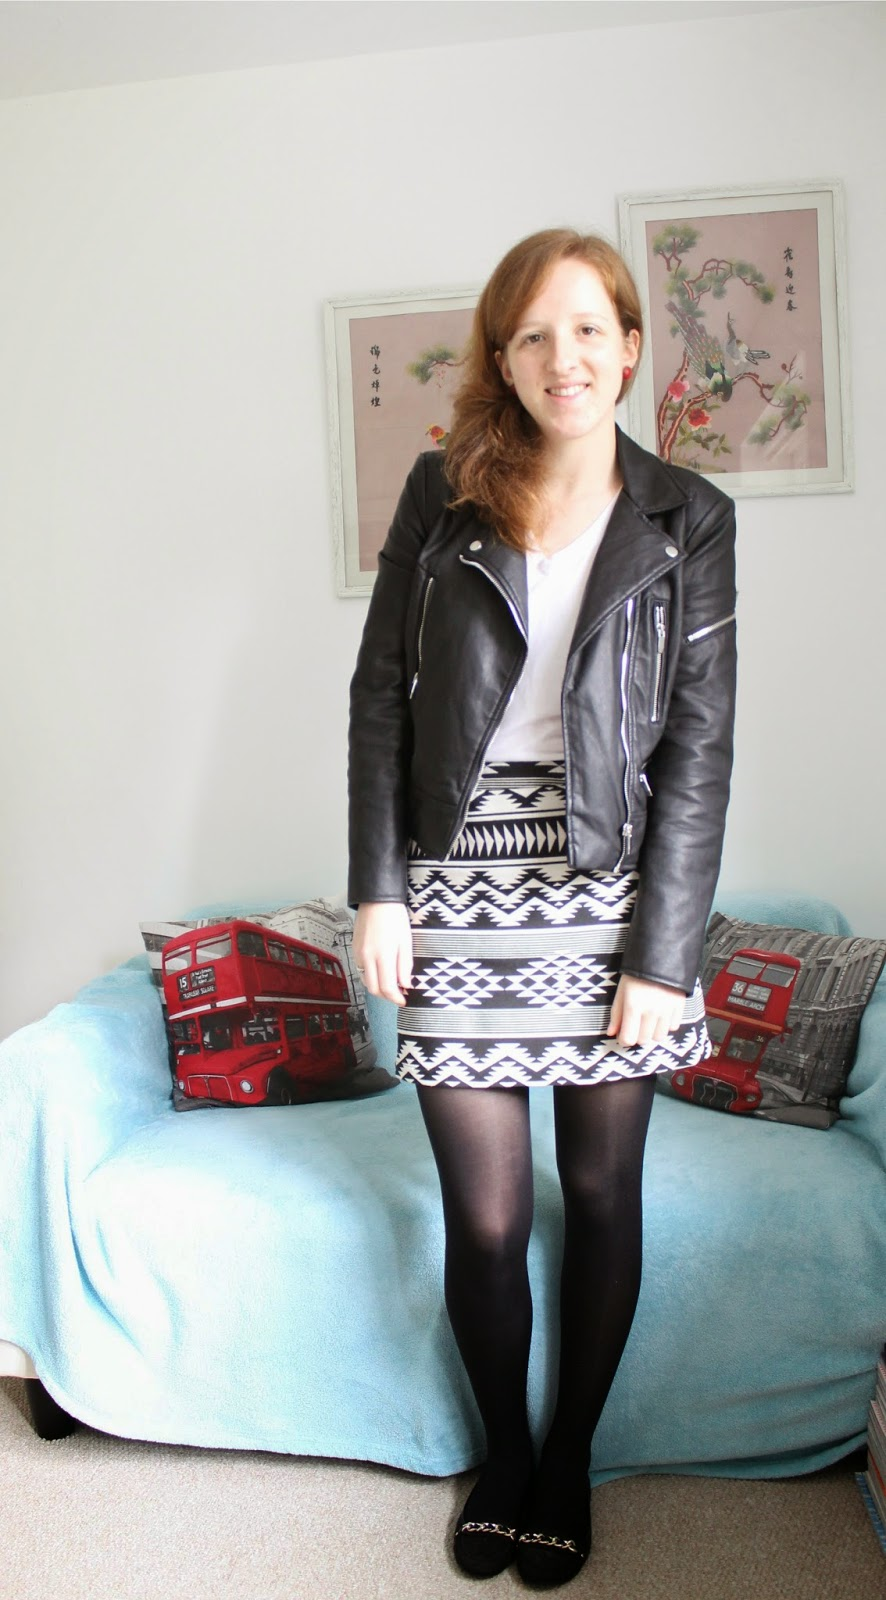 OOTD: Topshop Monochrome Aztec A-Line Skirt and Leather Jacket